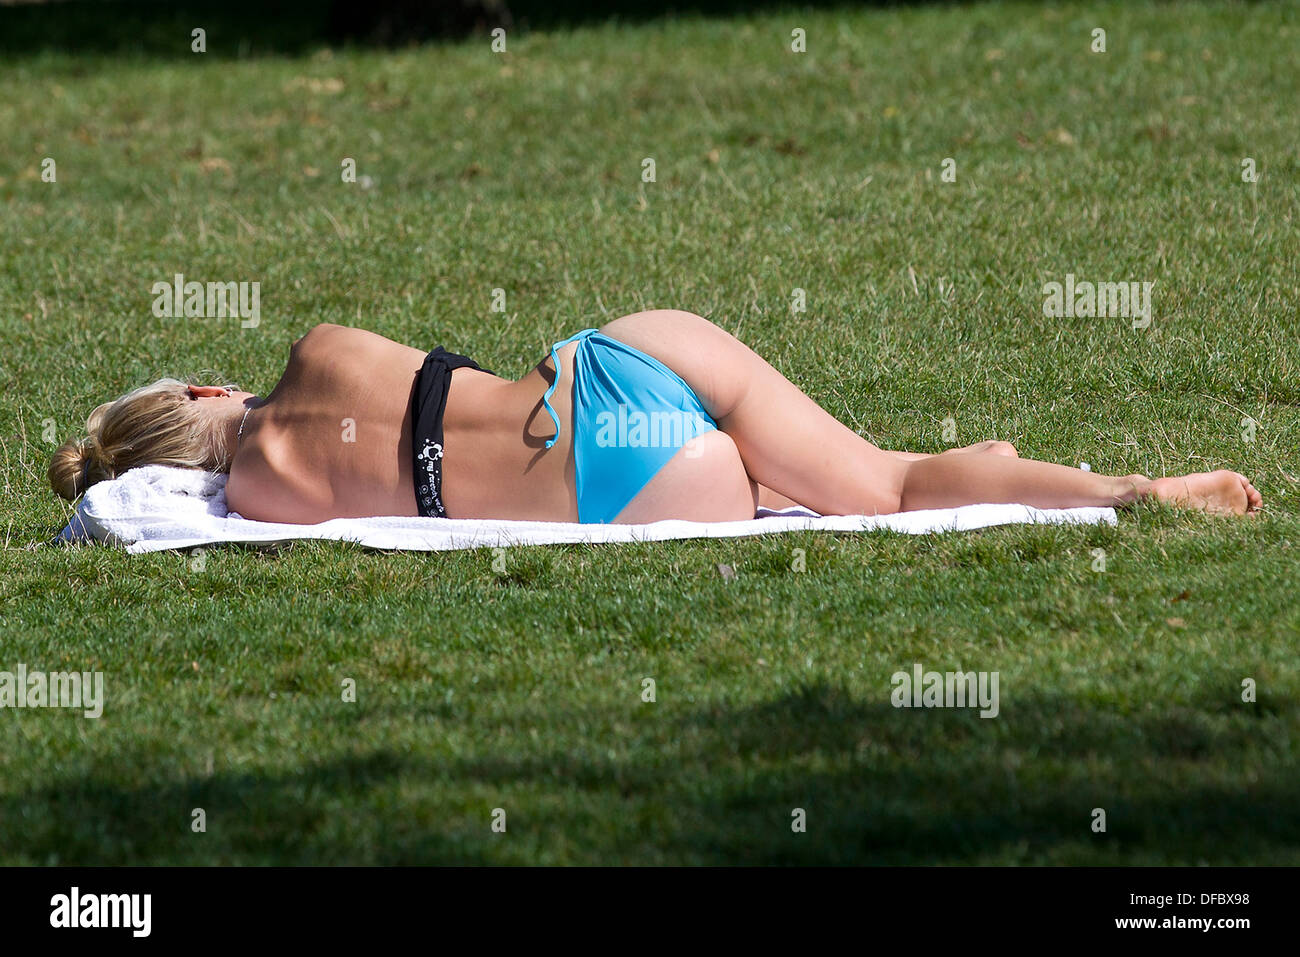 United Kingdom, London : A woman in her bathing costume sunbathes on the grass in Hyde Park in London on August 29, 2013. - Stock Image